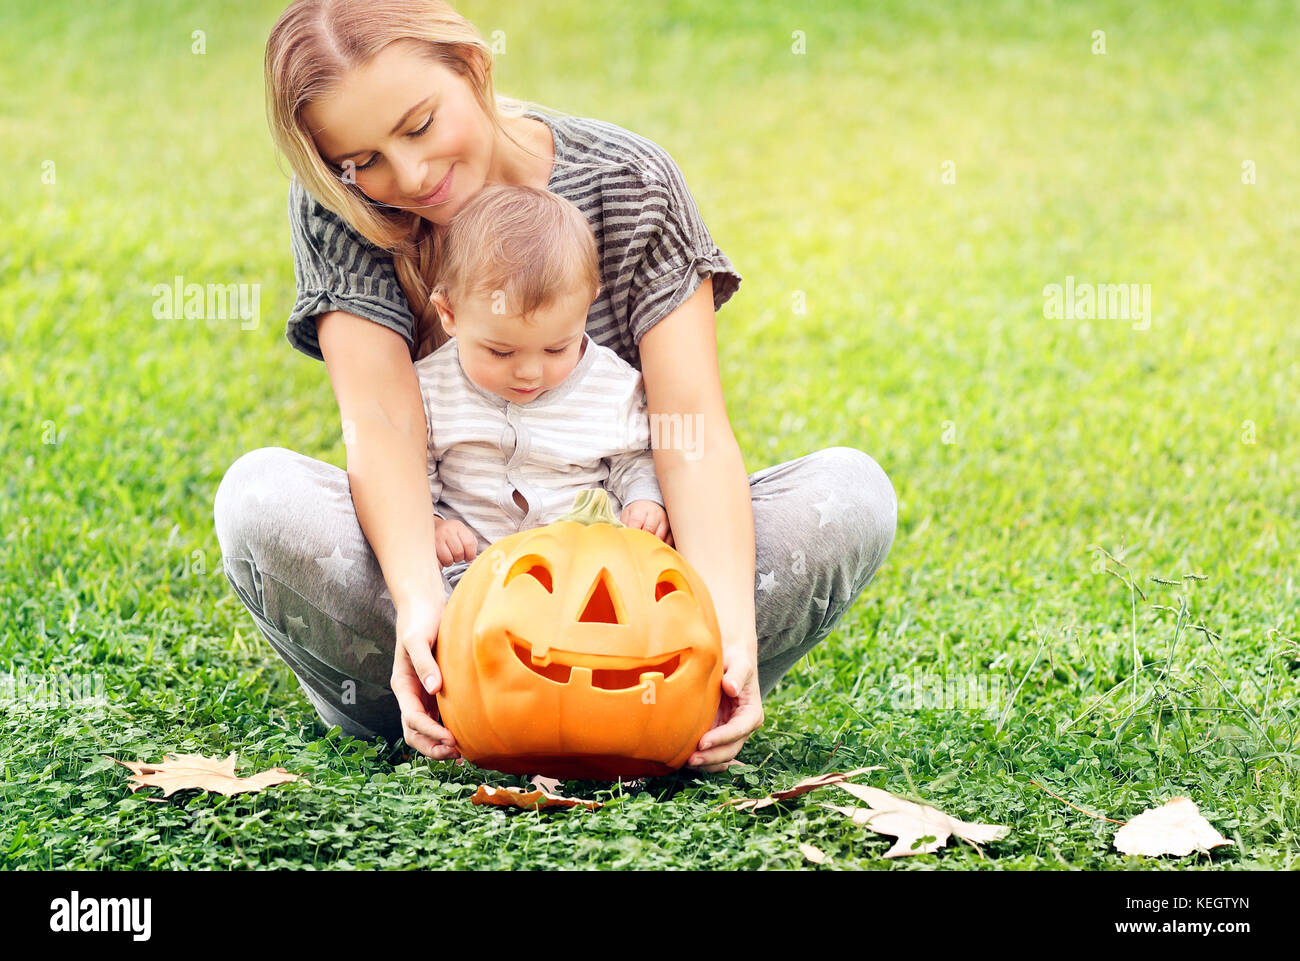 Beautiful young mother with adorable little child, playing with carved pumpkin, enjoying traditional autumn holiday, Stock Photo